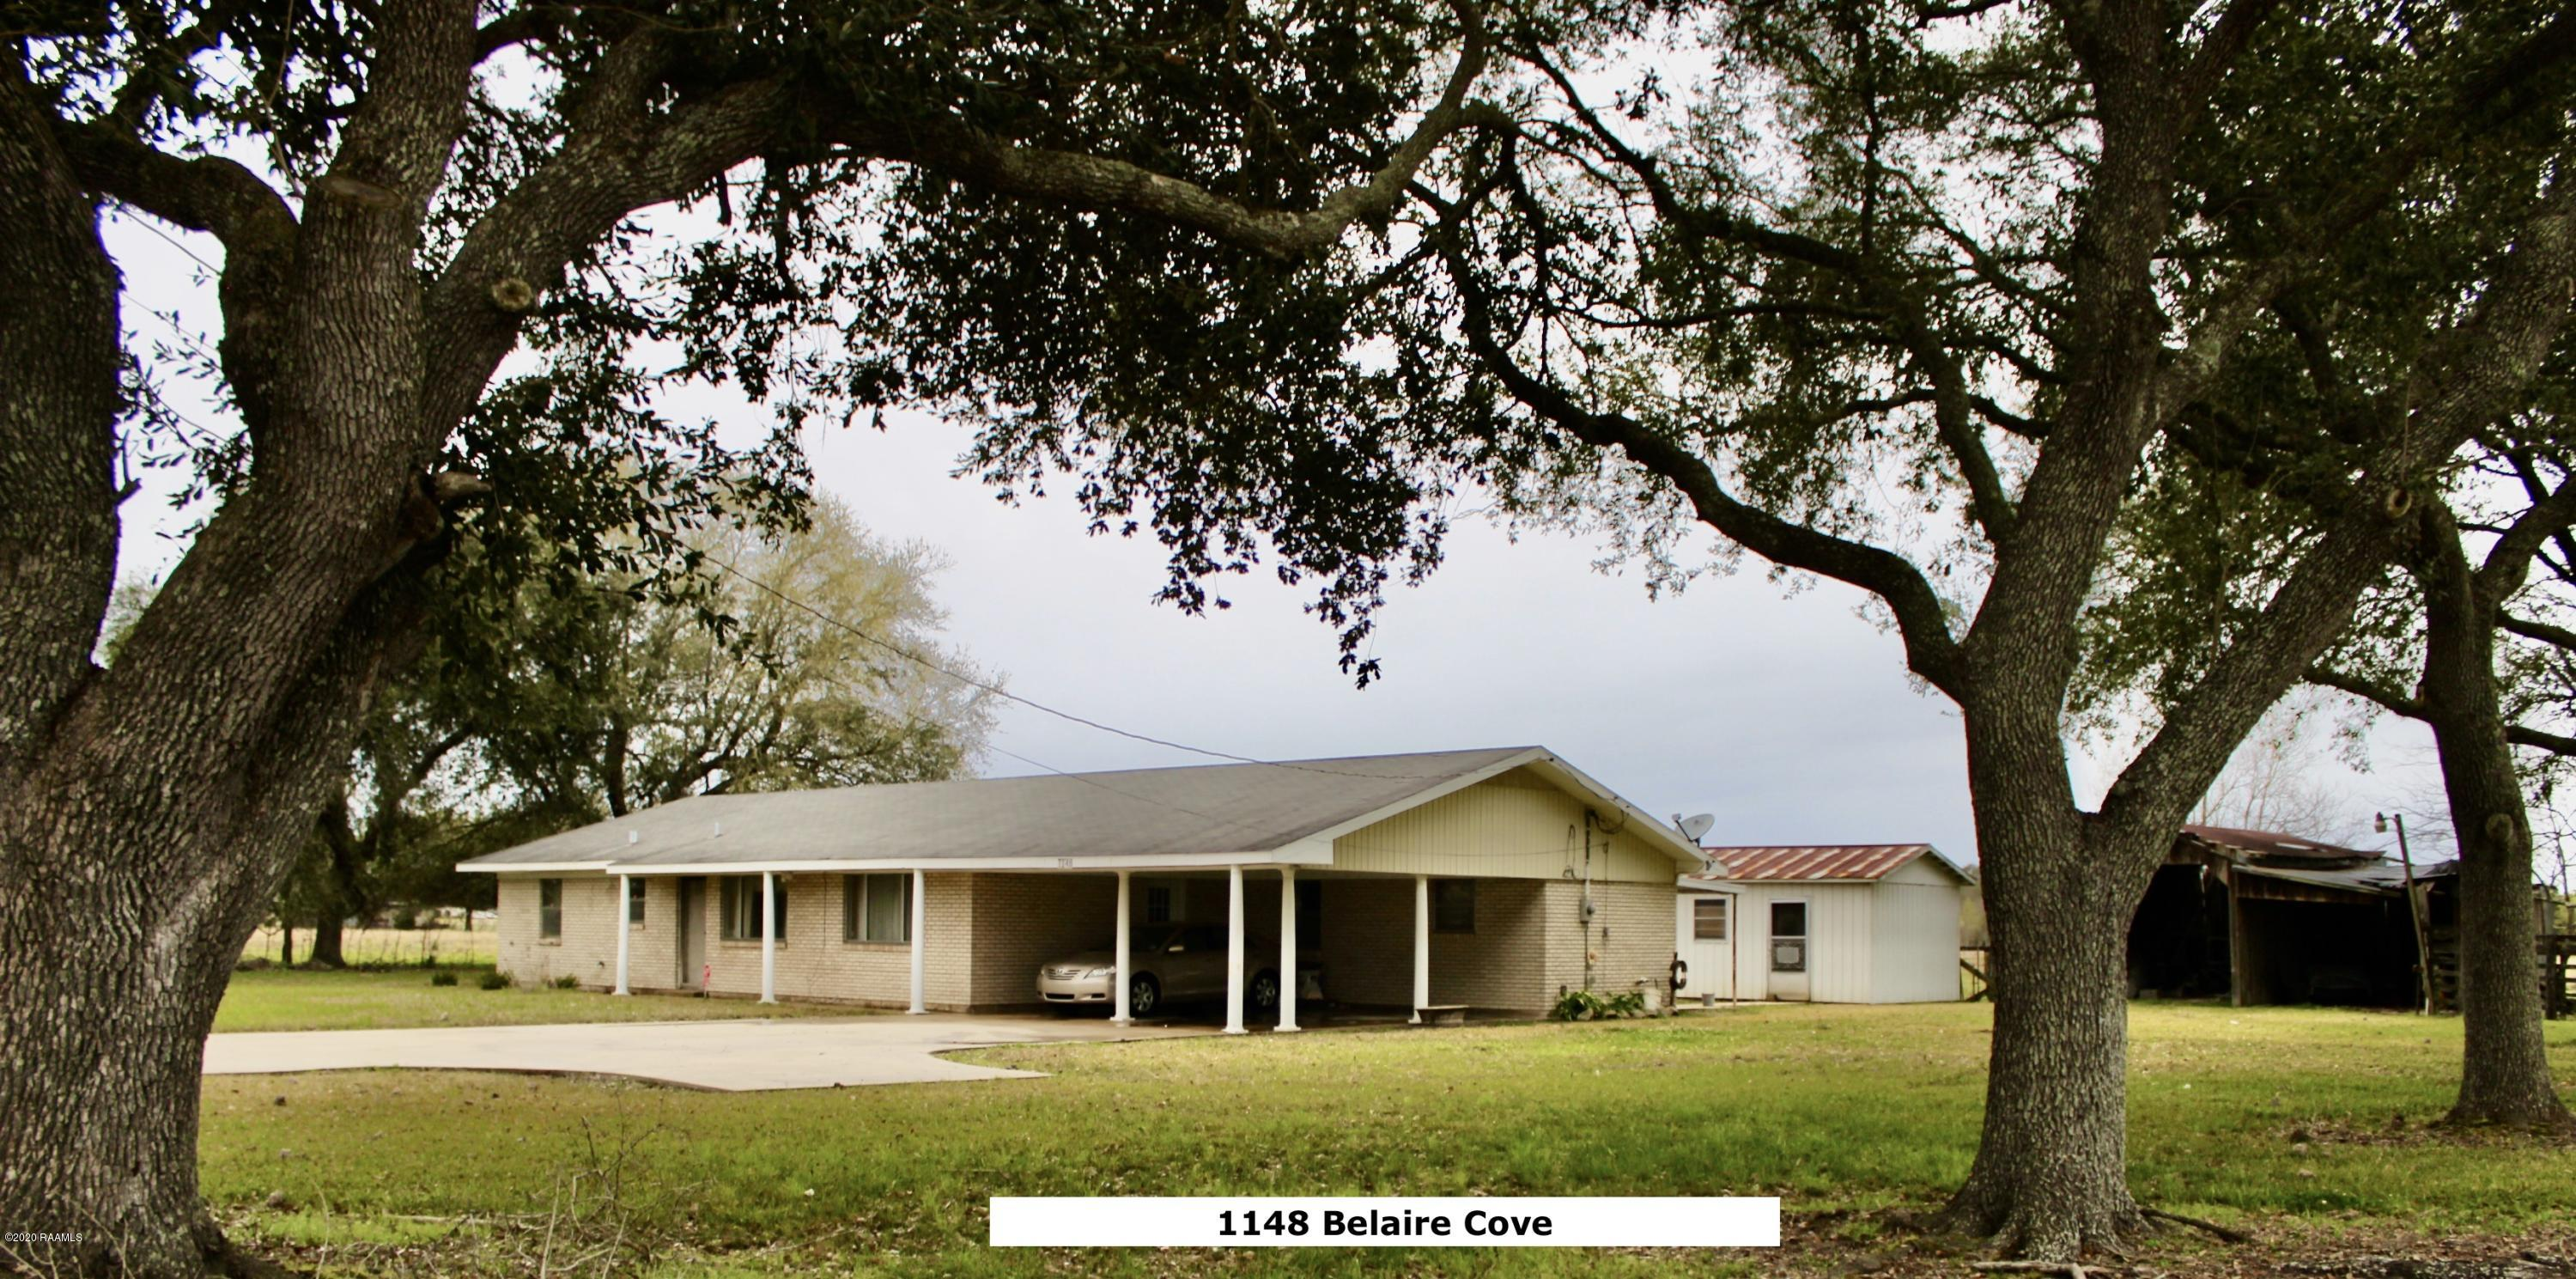 1148 Belaire Cove Road, Ville Platte, LA 70586 Photo #24